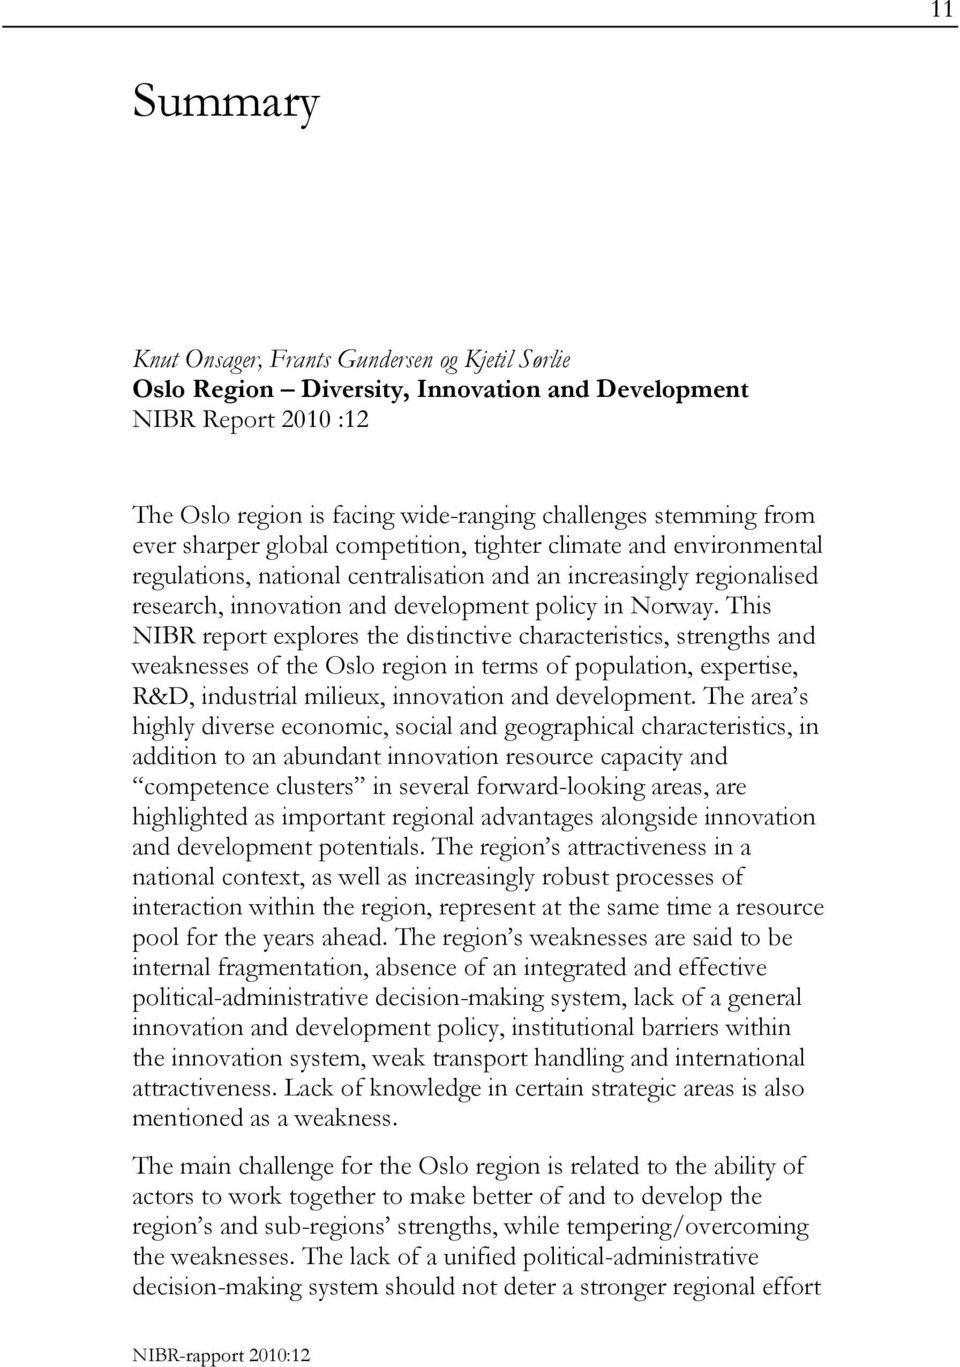 This NIBR report explores the distinctive characteristics, strengths and weaknesses of the Oslo region in terms of population, expertise, R&D, industrial milieux, innovation and development.